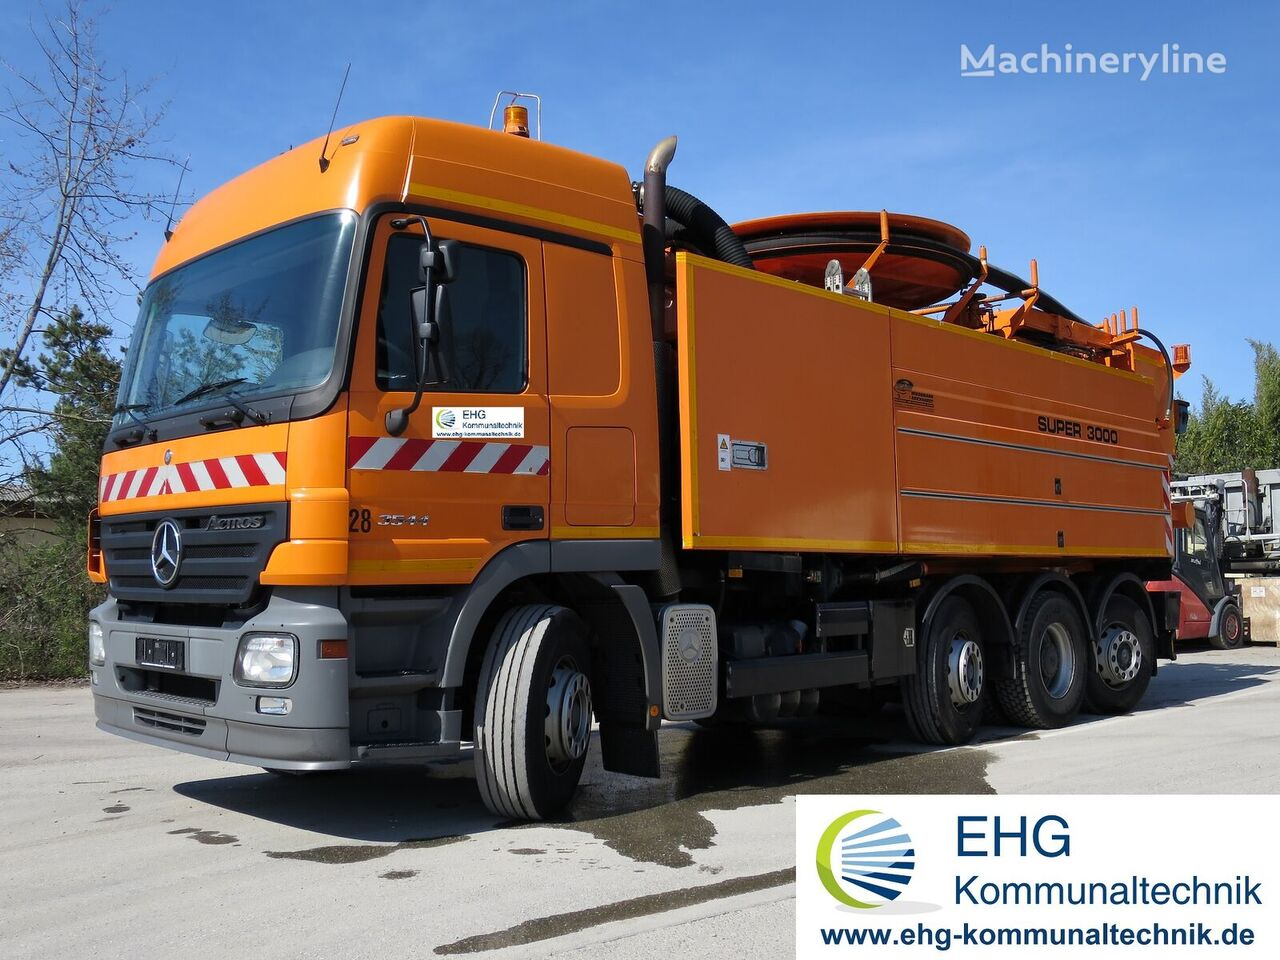 MERCEDES-BENZ Actros 3544 Wiedemann Super 3000 combination sewer cleaner